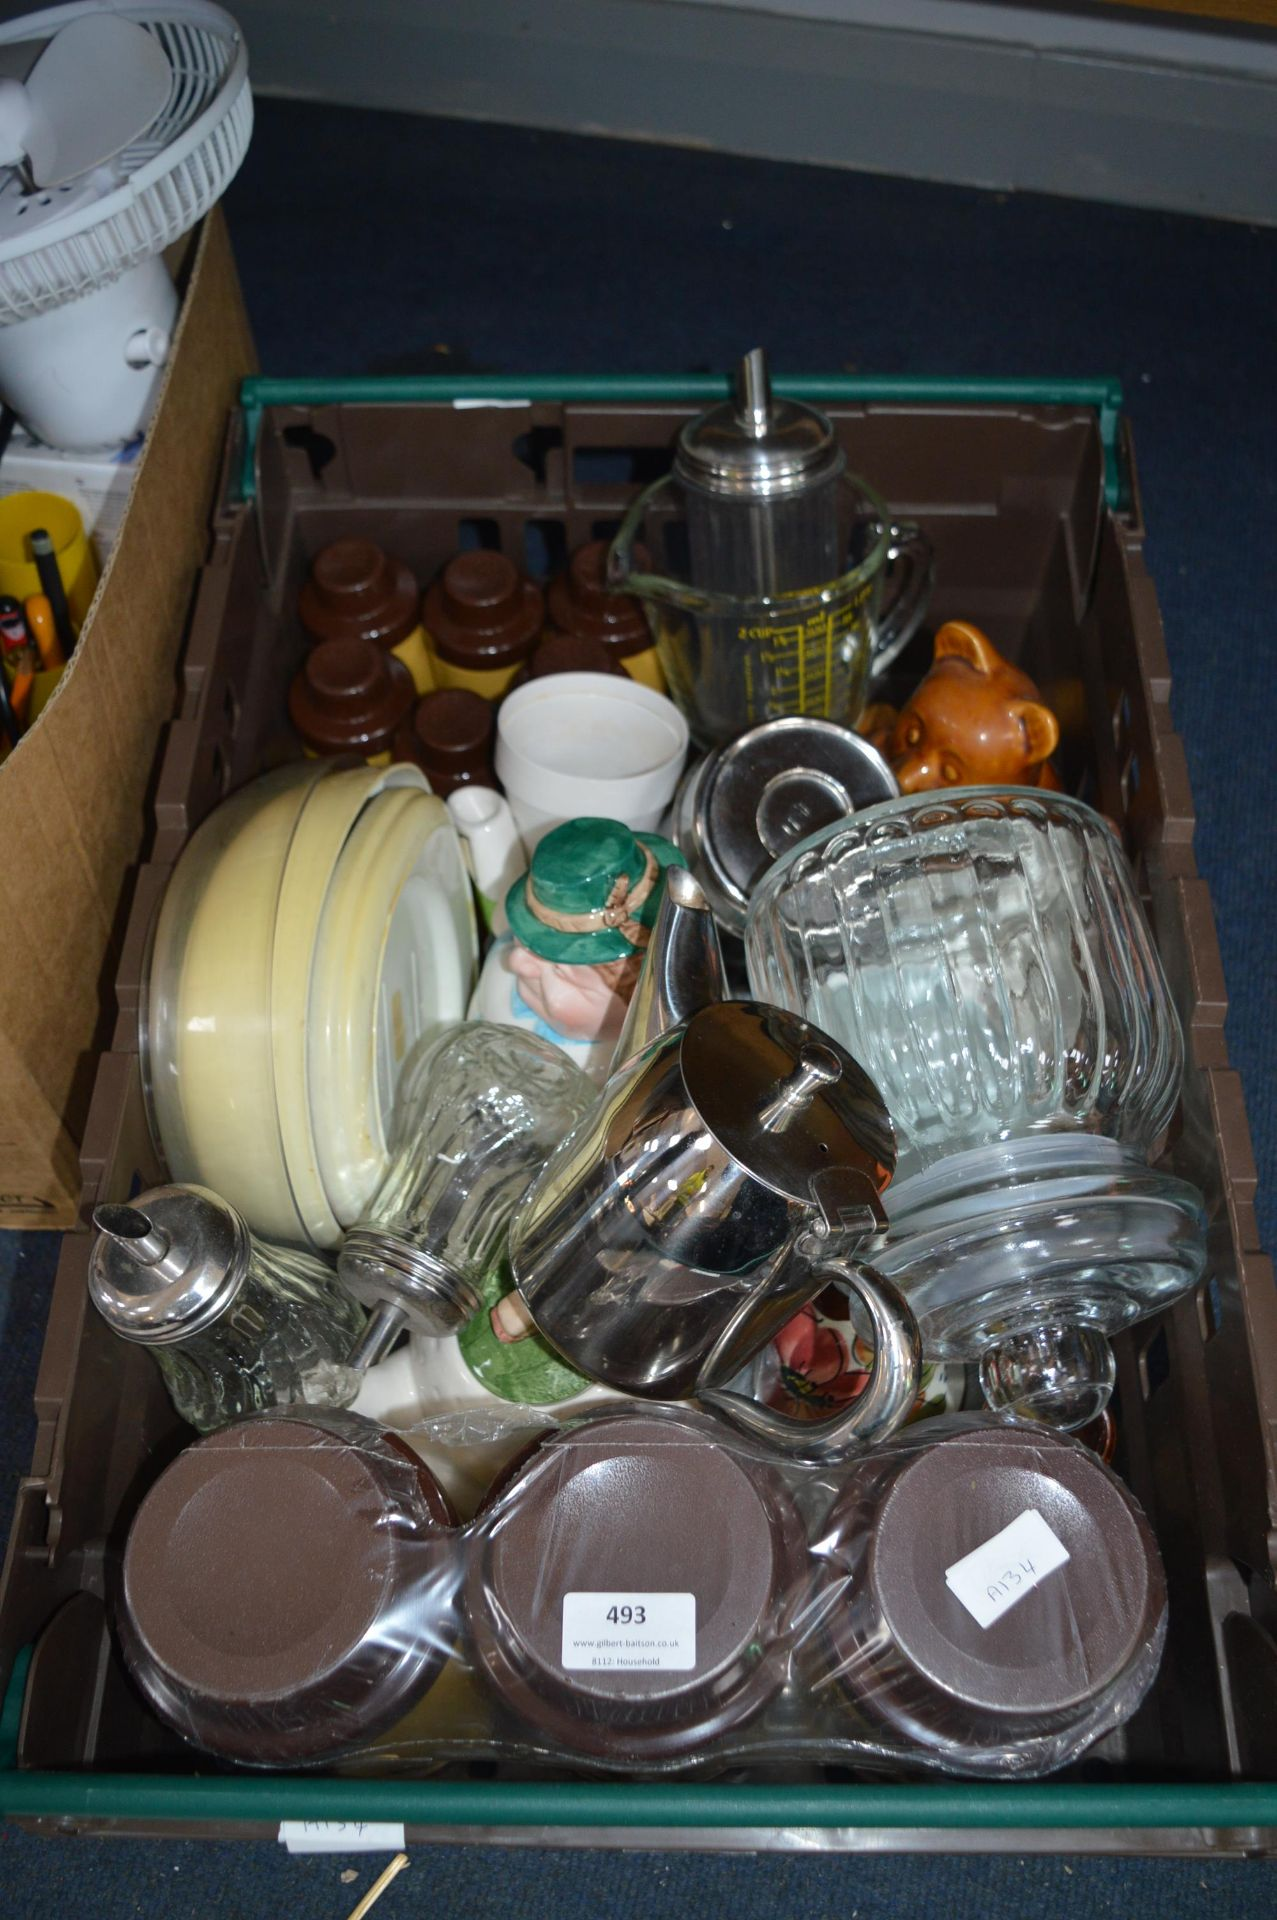 Lot 493 - Box Containing Assorted Vintage and Other Kitchena